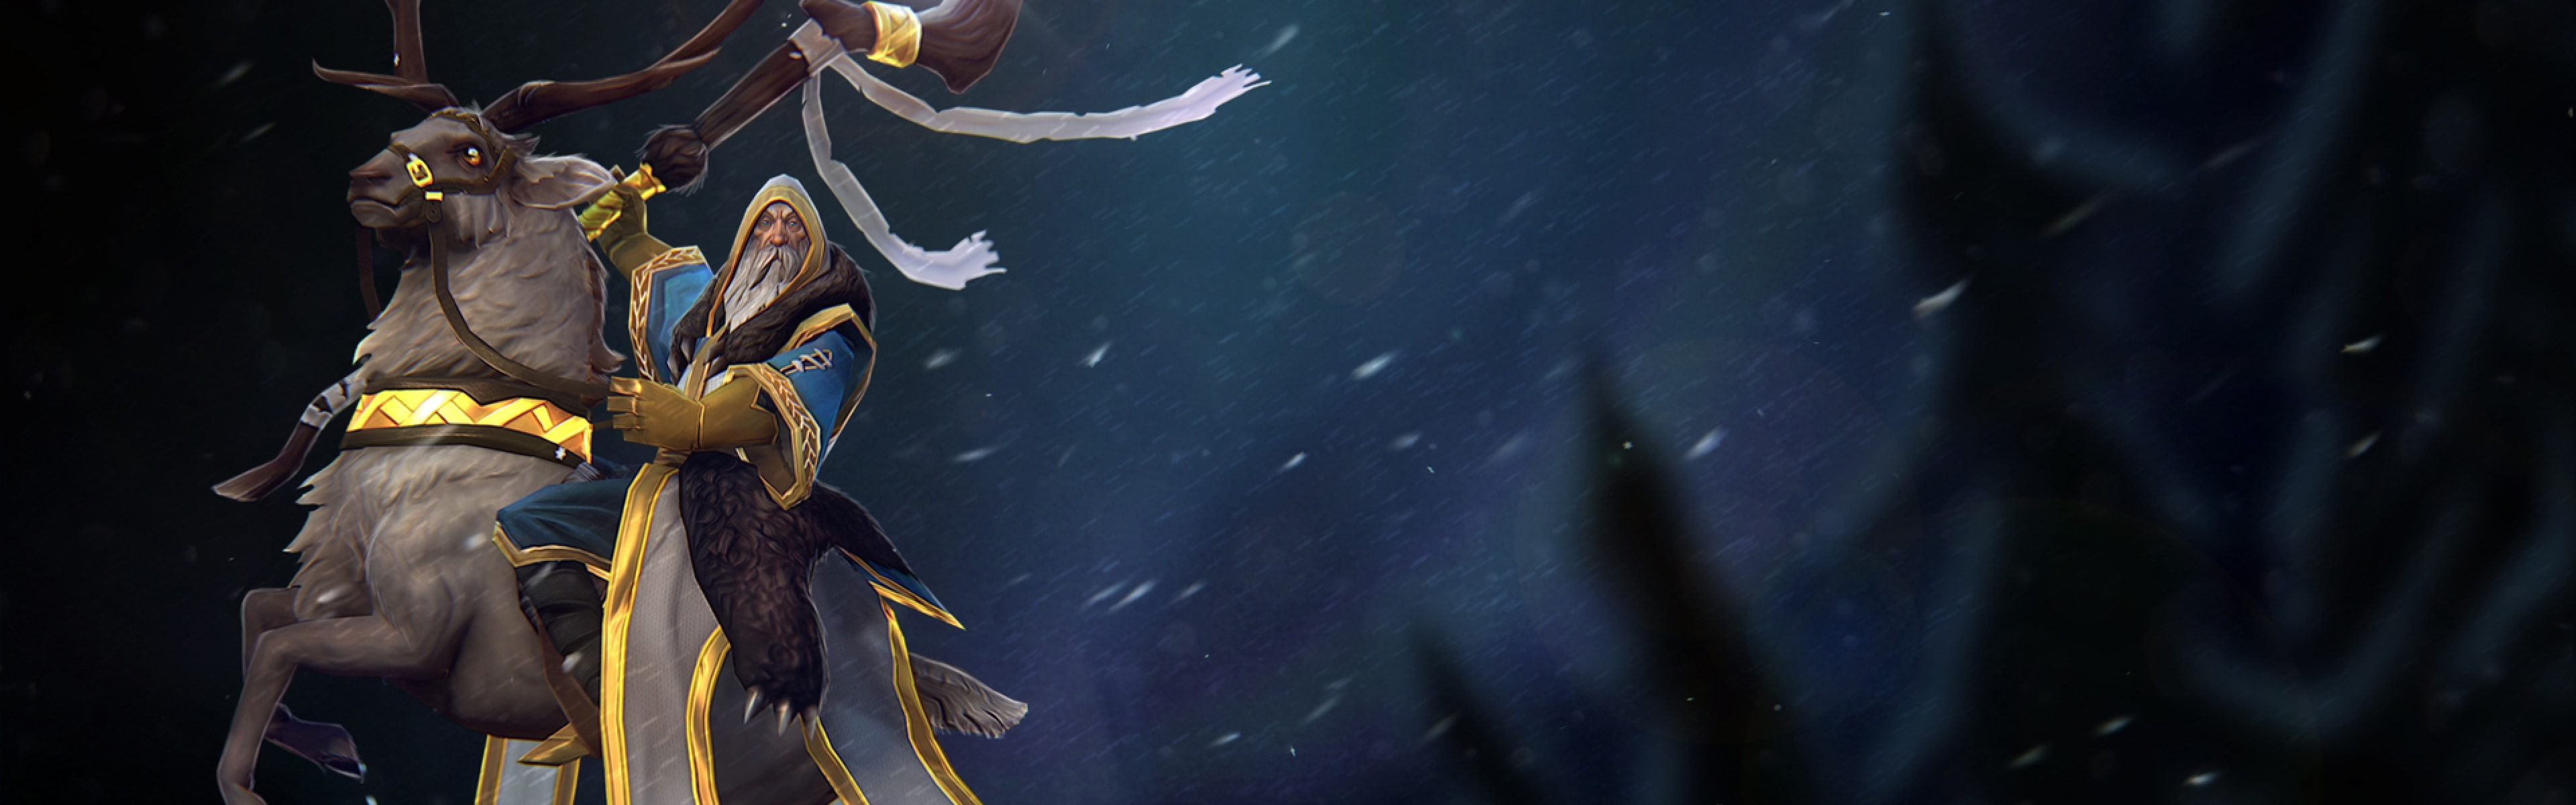 Dota2 : Keeper Of The Light widescreen wallpapers